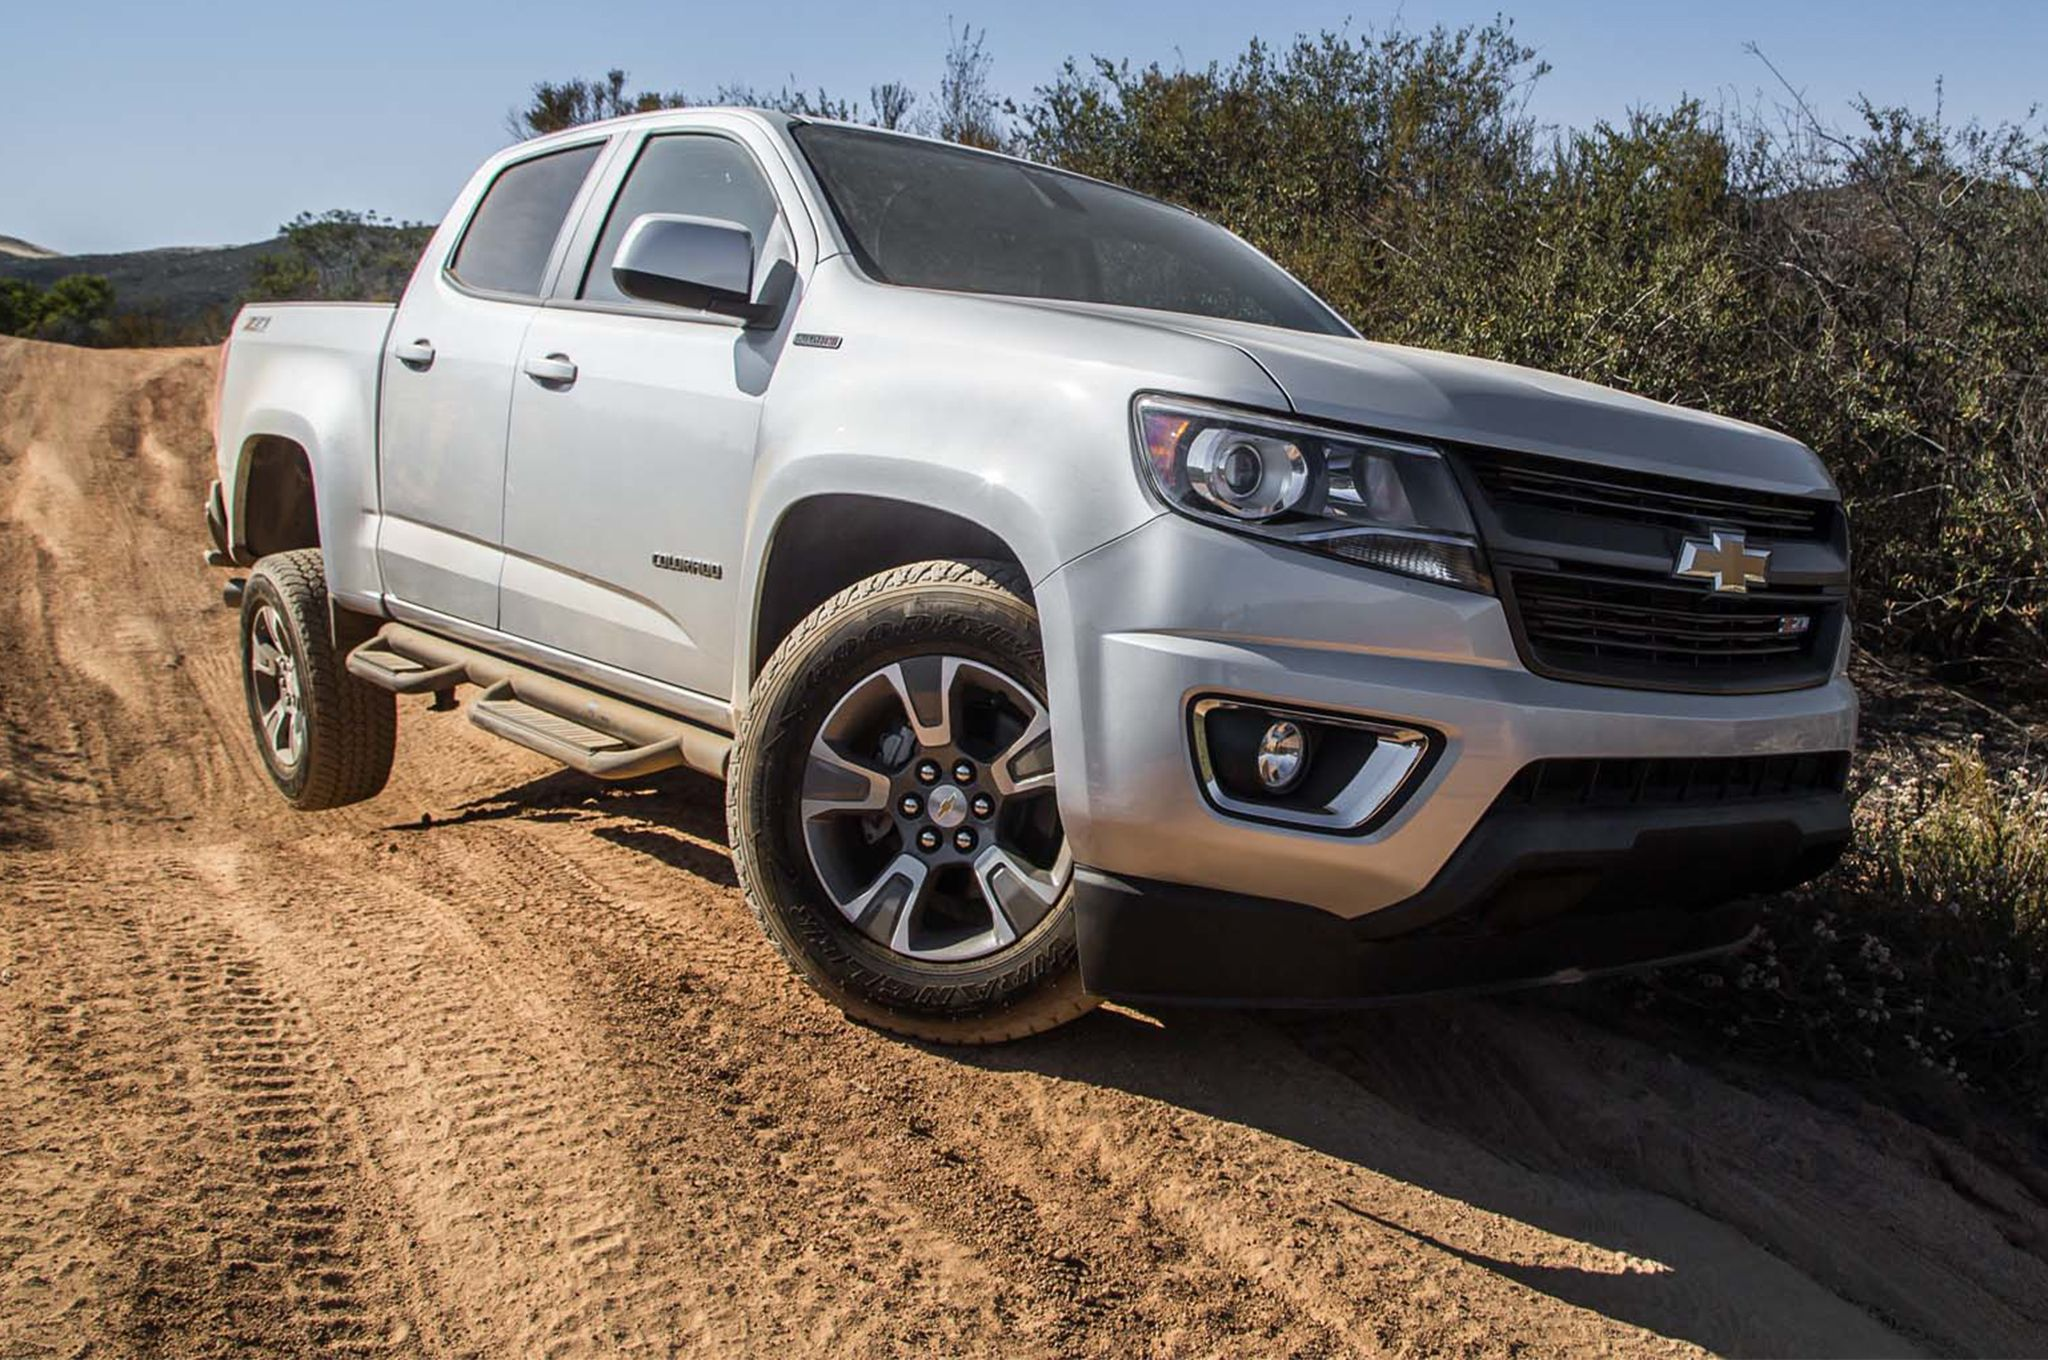 Check out this review of the Chevy Colorado